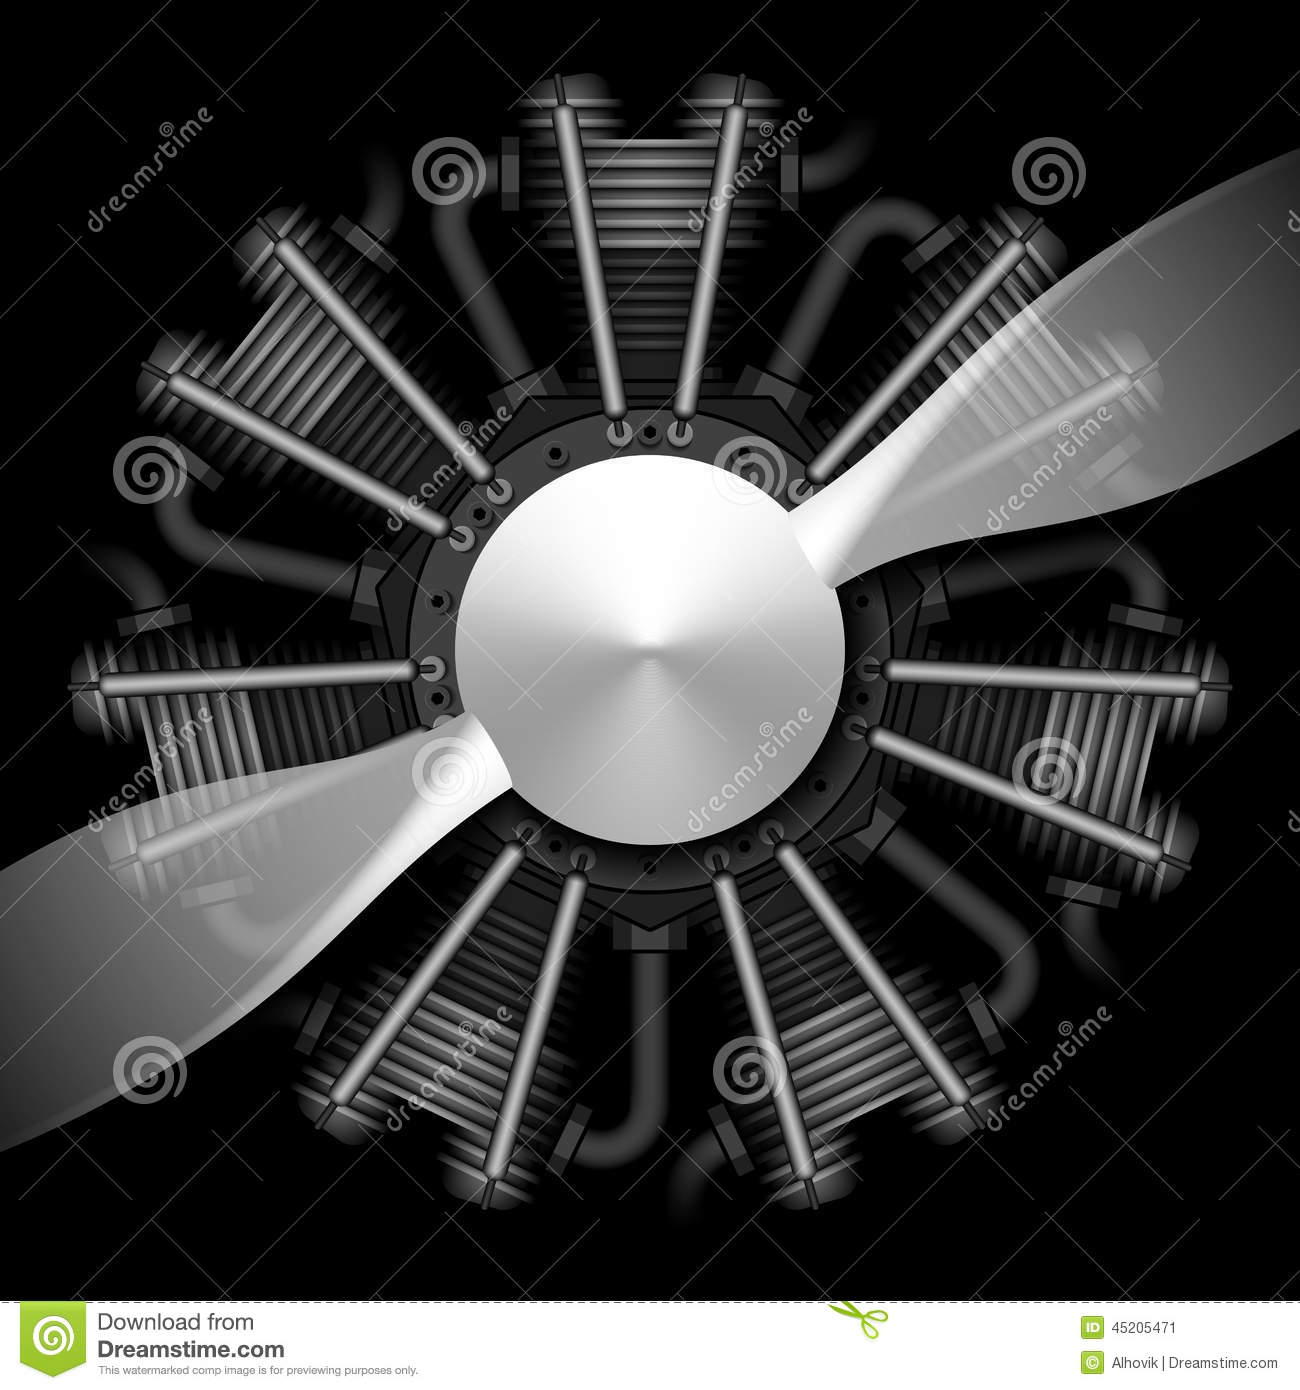 Radial Engine With Propeller Royalty Free Stock Images.